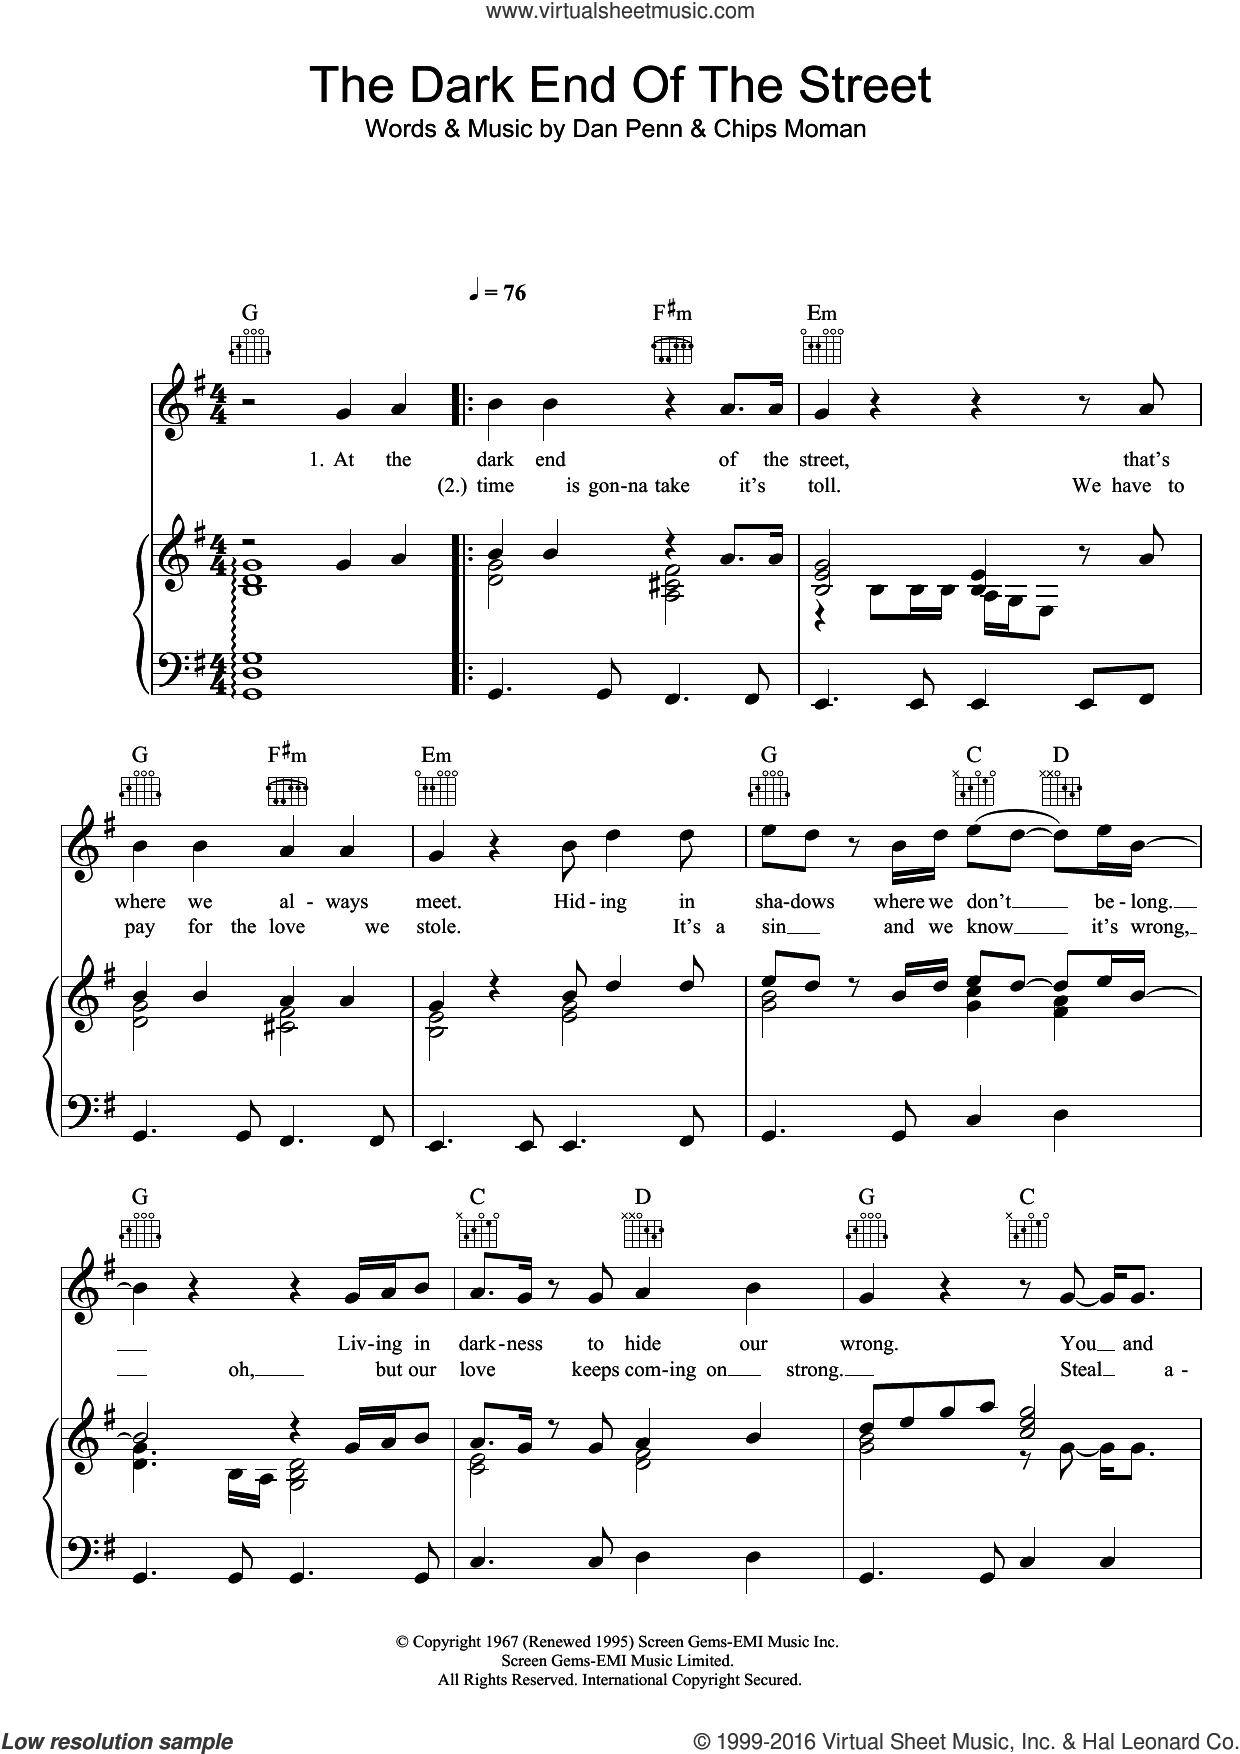 The Dark End Of The Street sheet music for voice, piano or guitar by Percy Sledge, Chips Moman and Dan Penn, intermediate skill level